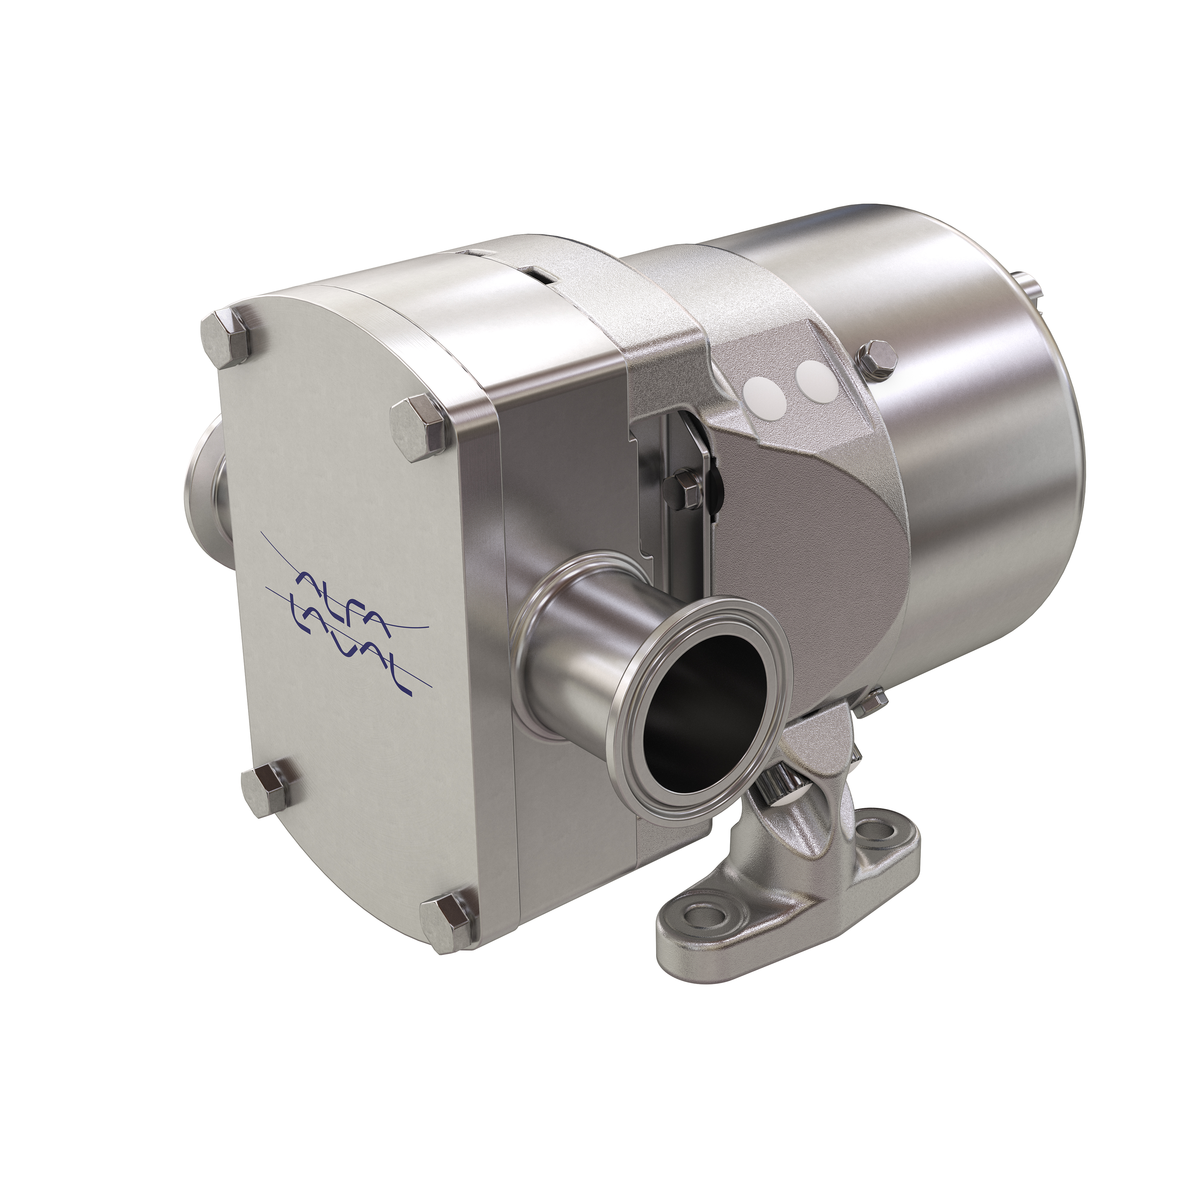 Alfa Laval introduces OptiLobe